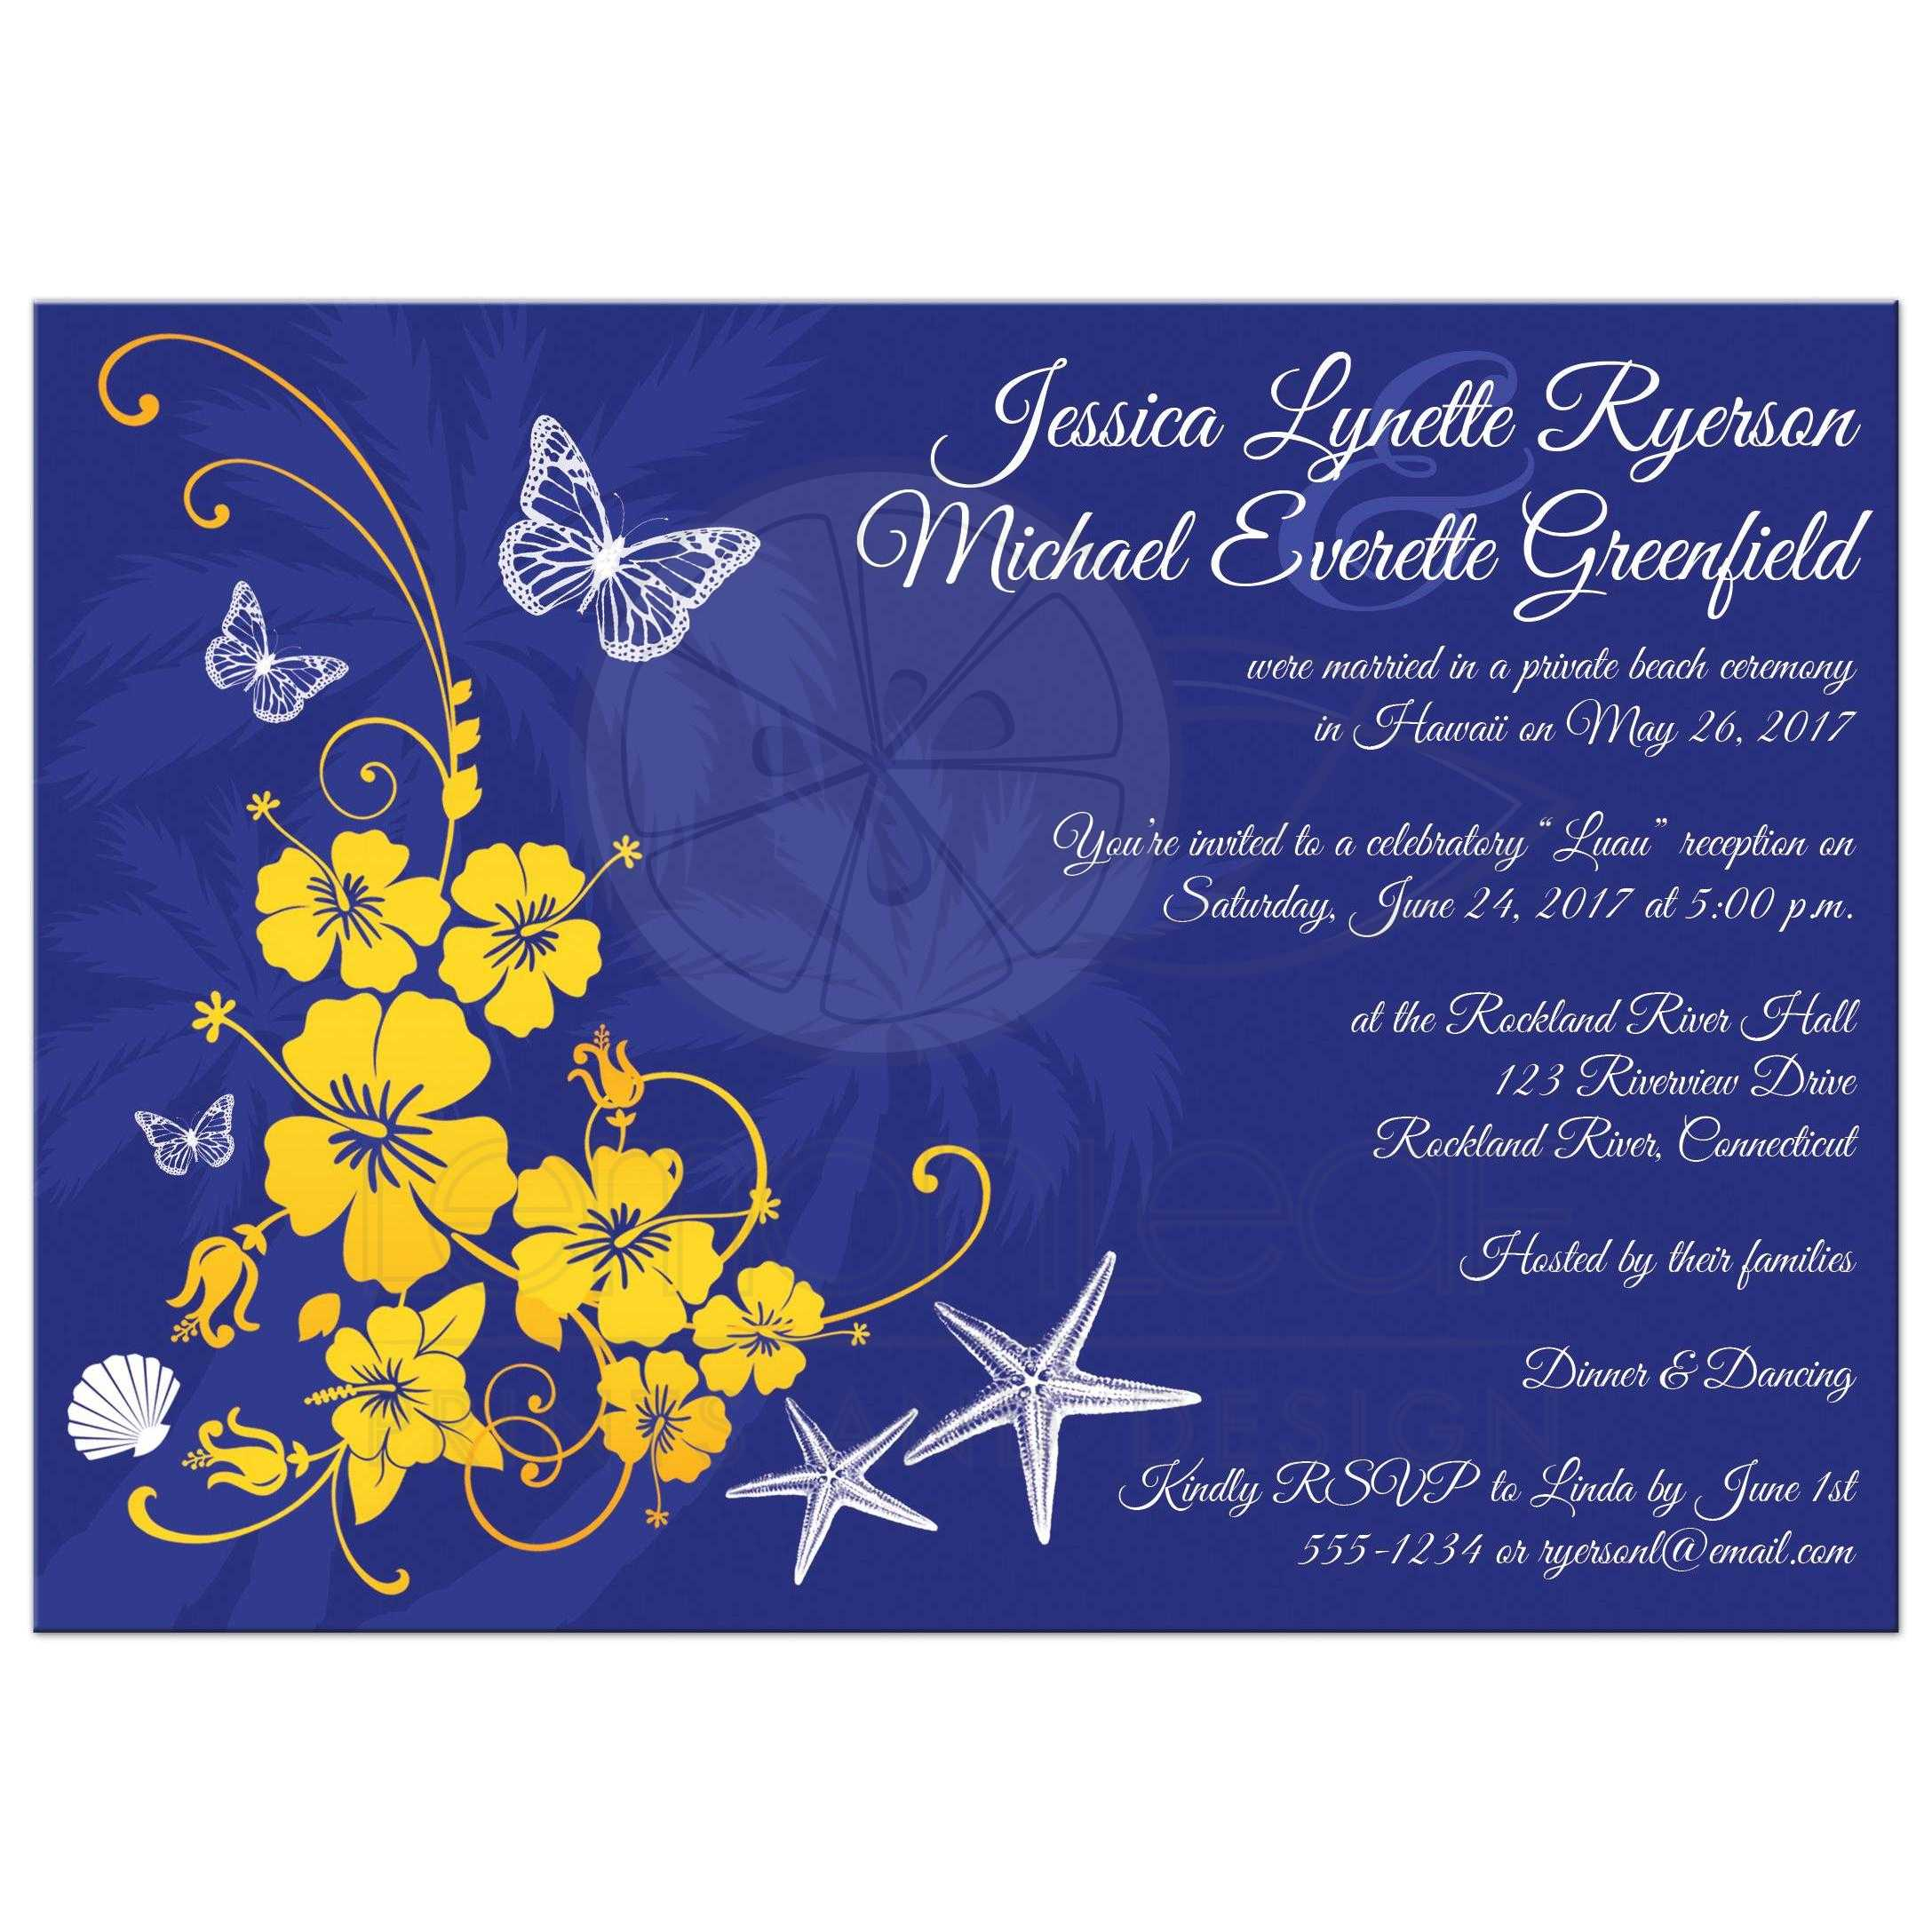 Great Blue Yellow And White Tropical Beach Theme Wedding Invites With Scallop Sea Shells